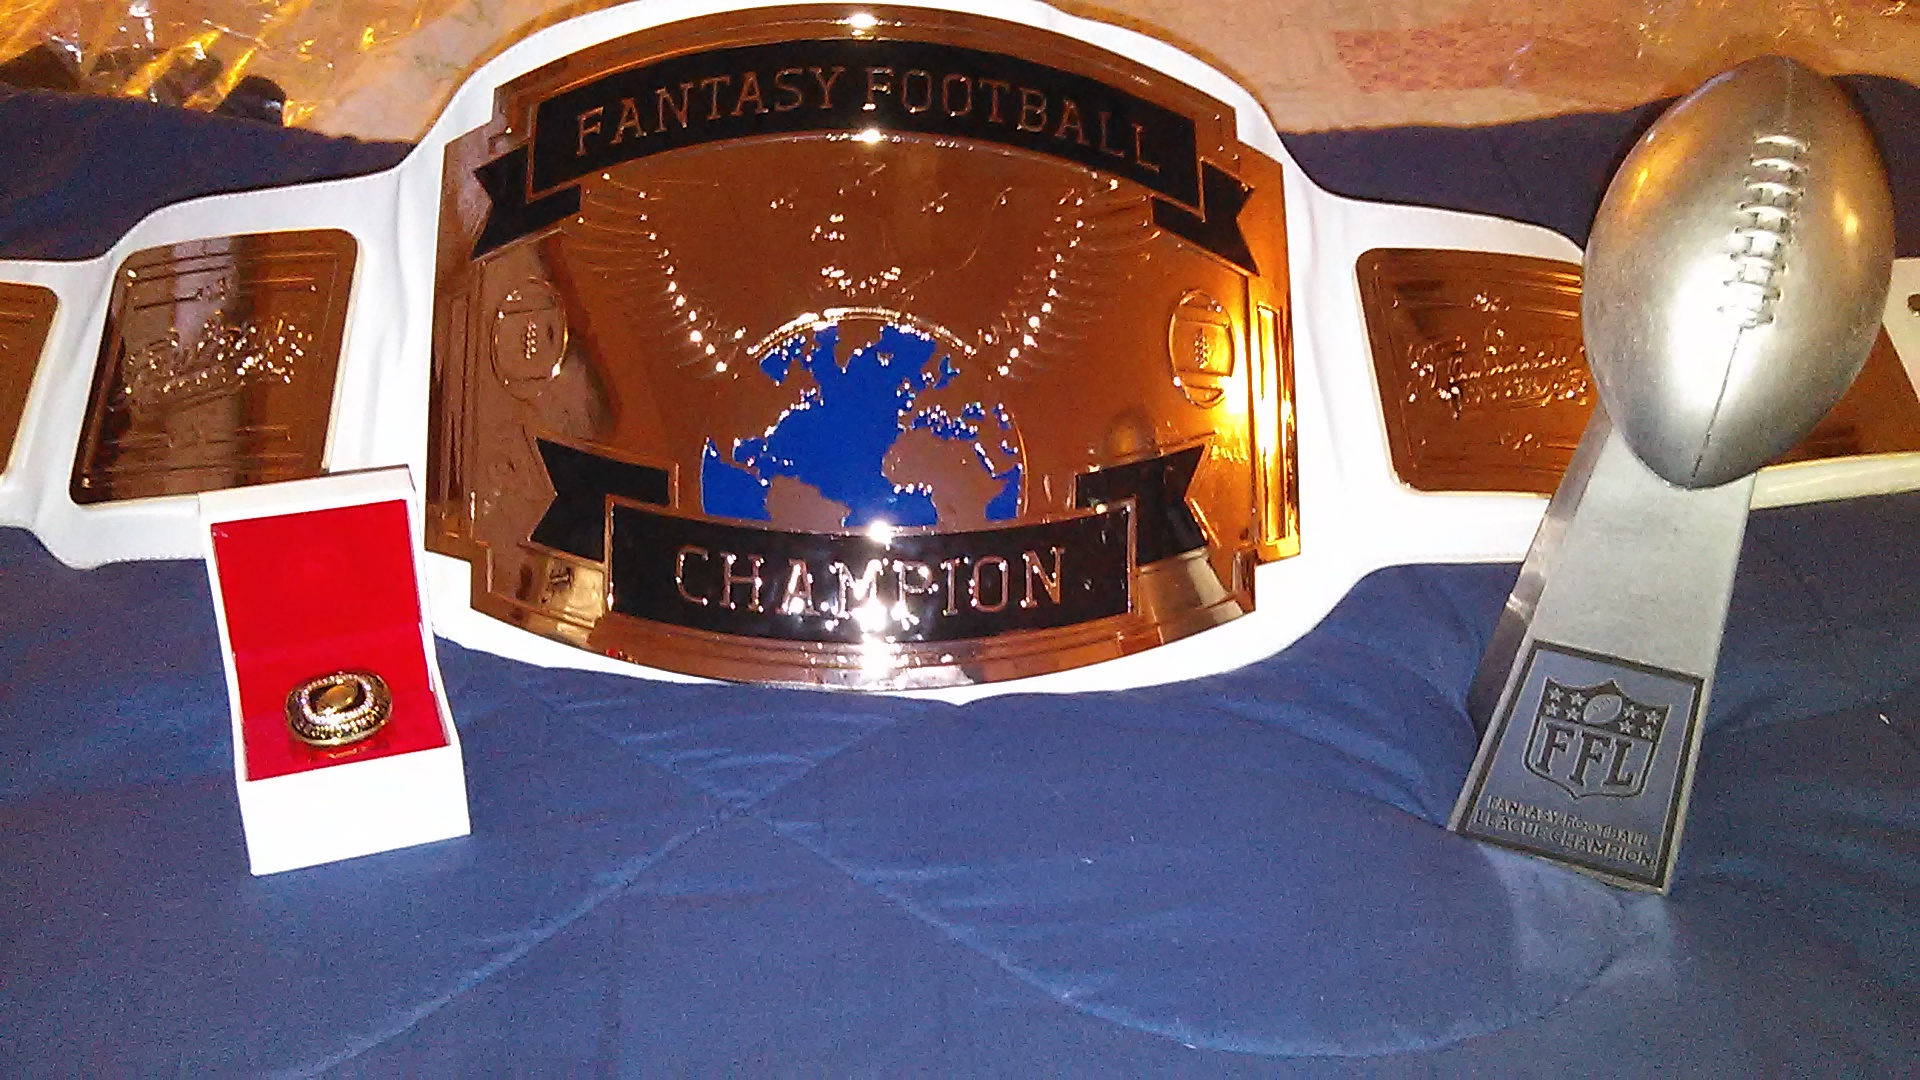 The overall champ will receive a cash prize,  Lombardi replica trophy, championship belt and championship ring.  Cash prizes for second and third as well. (TMF photo)